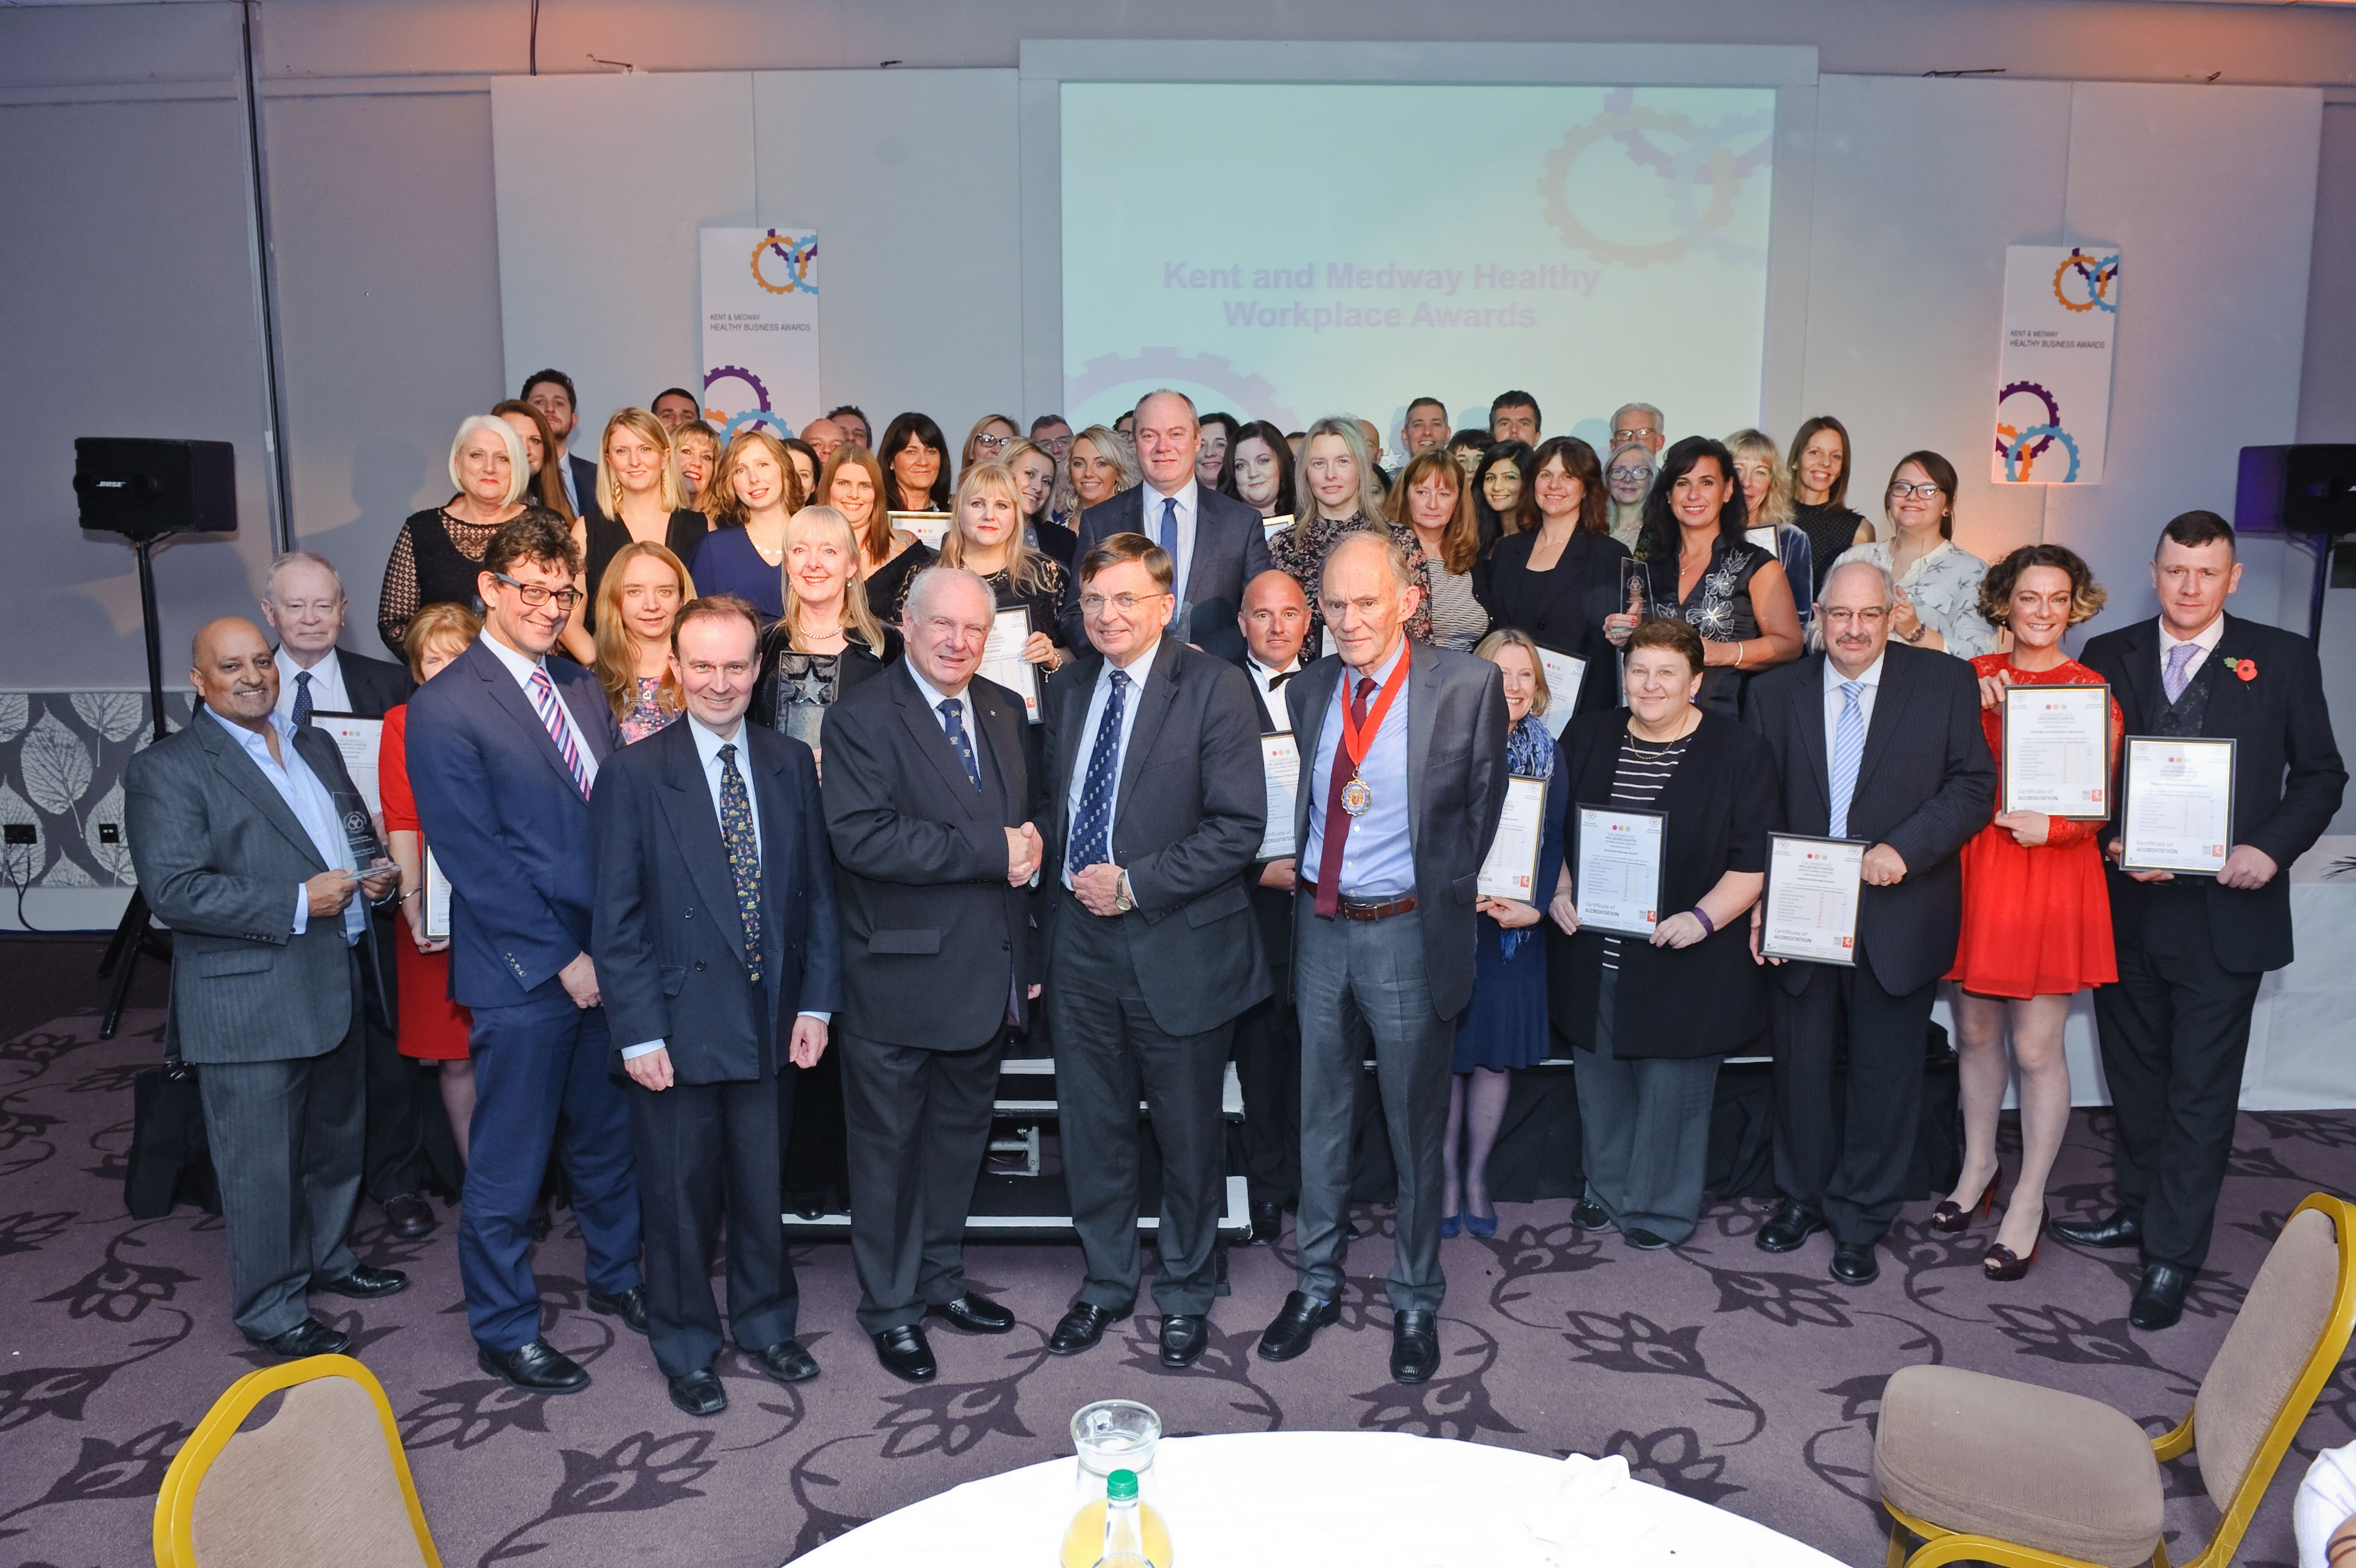 Healthy staff and businesses across Kent and Medway win awards